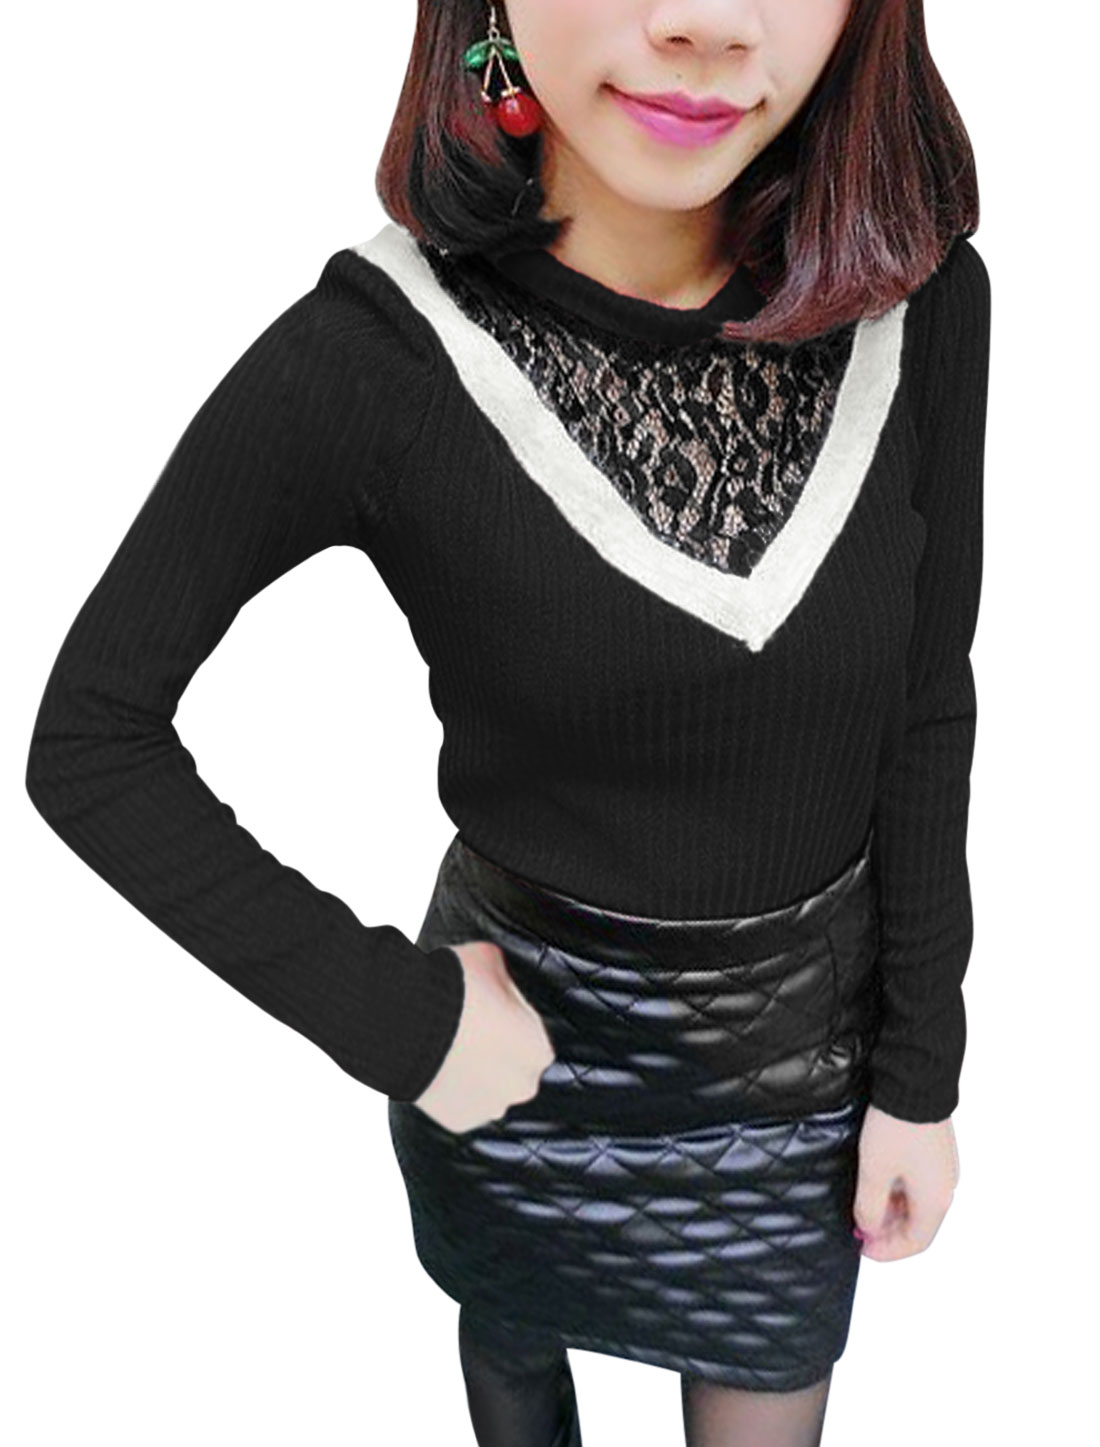 Women Lace Spliced Long Sleeves Slim Fit Knit Shirt Black XS